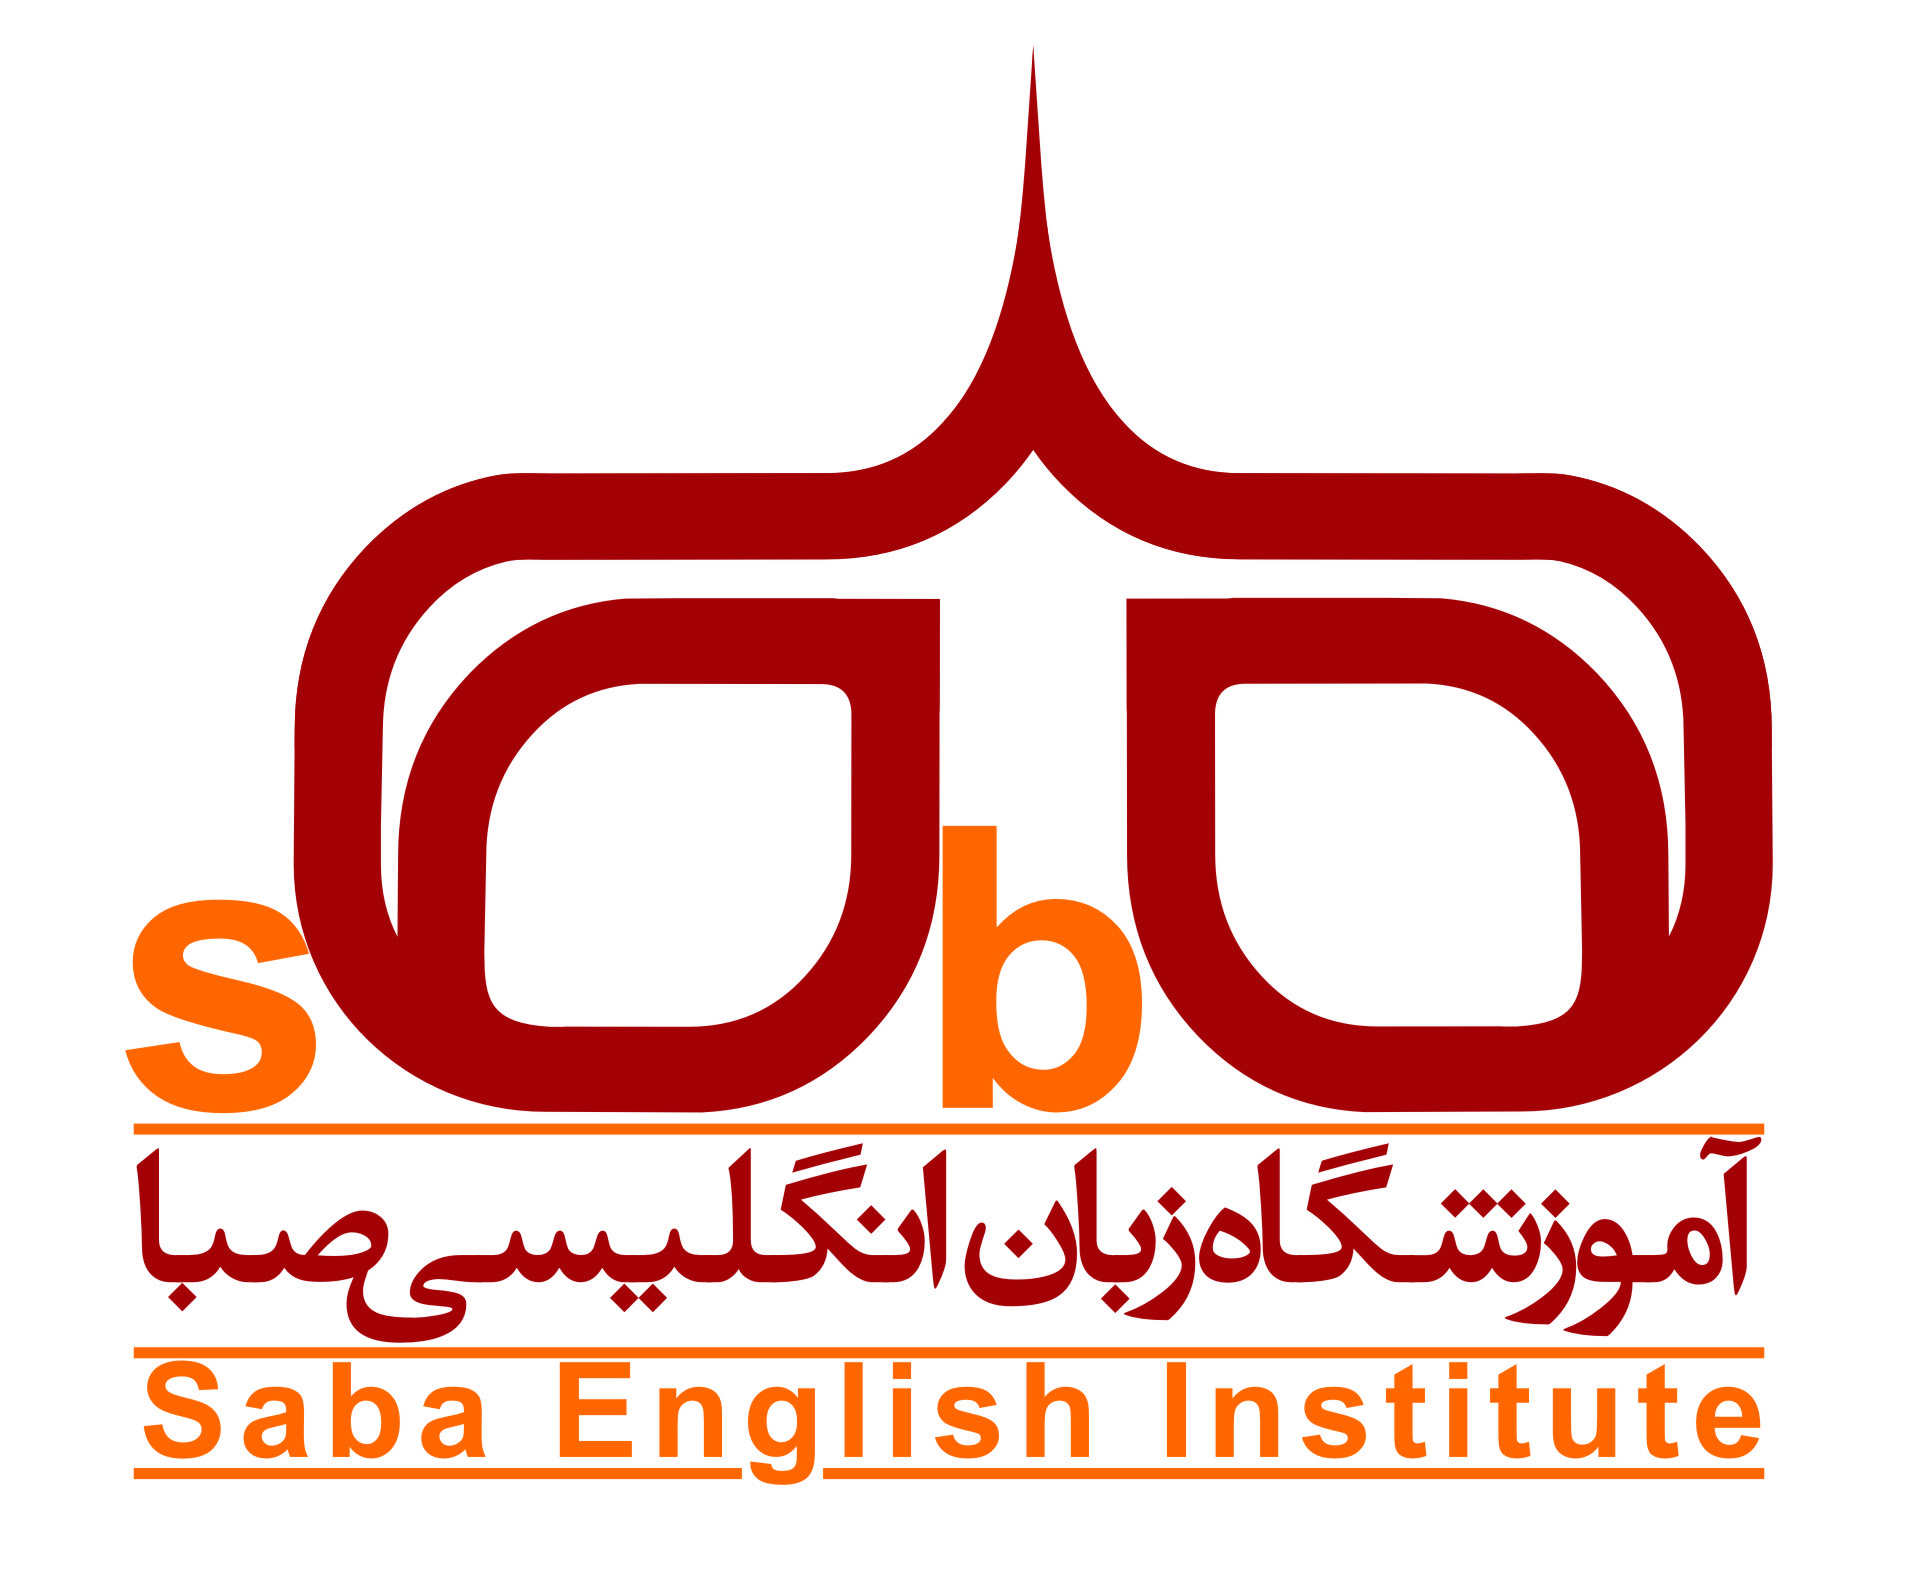 Saba English Institute